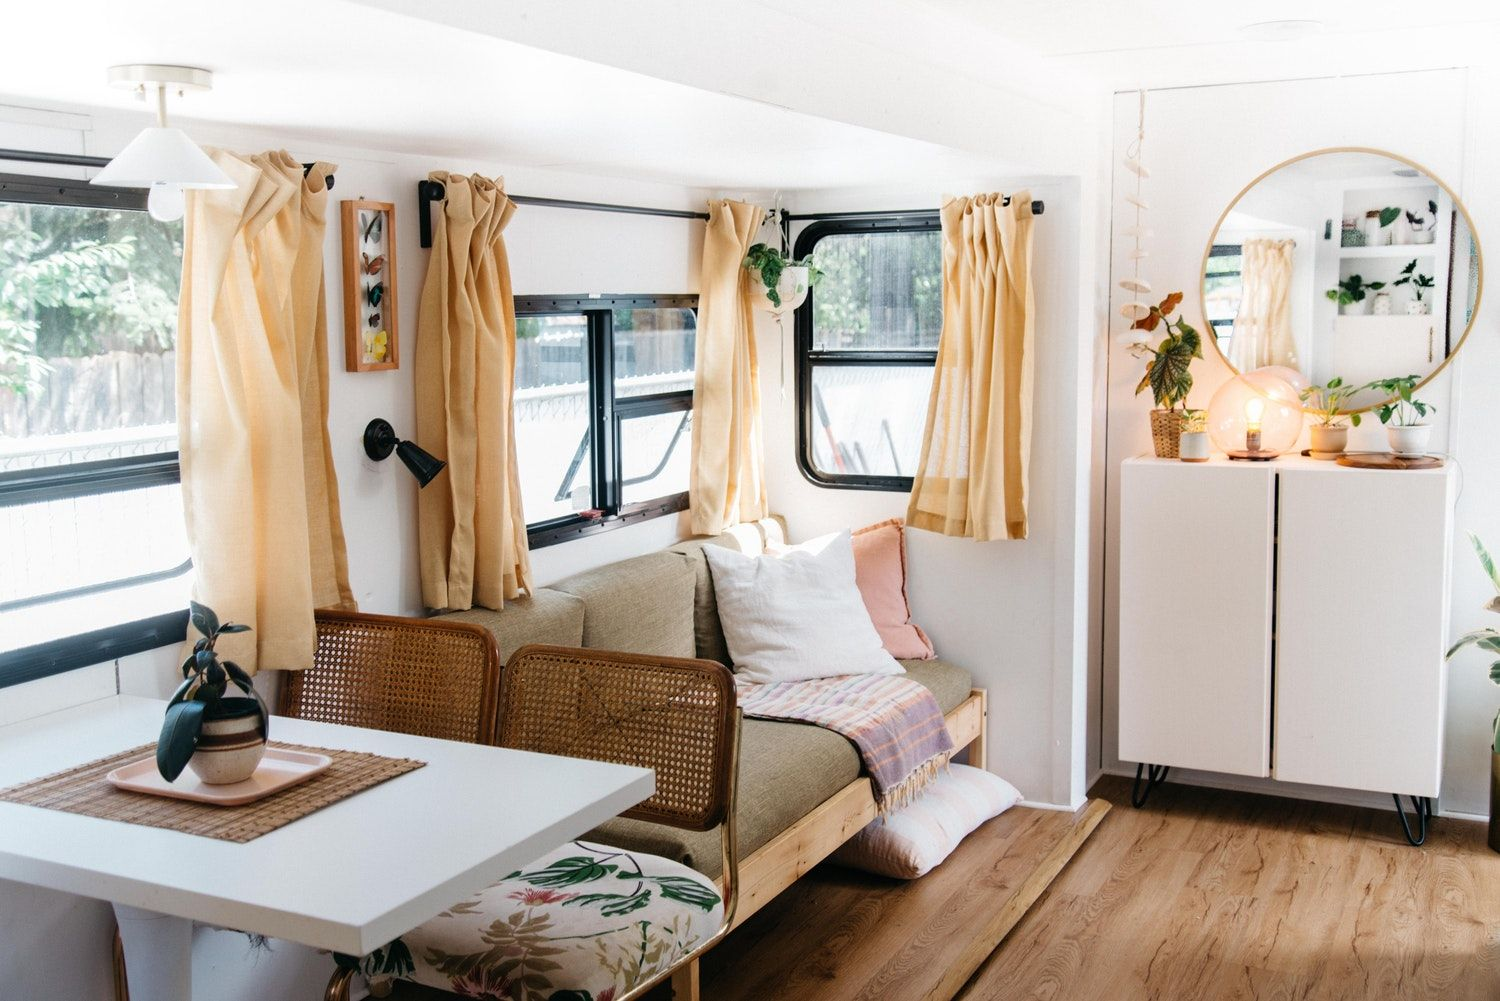 A Tiny Gutted RV Is Now a Fun Family Home for 4 Tiny